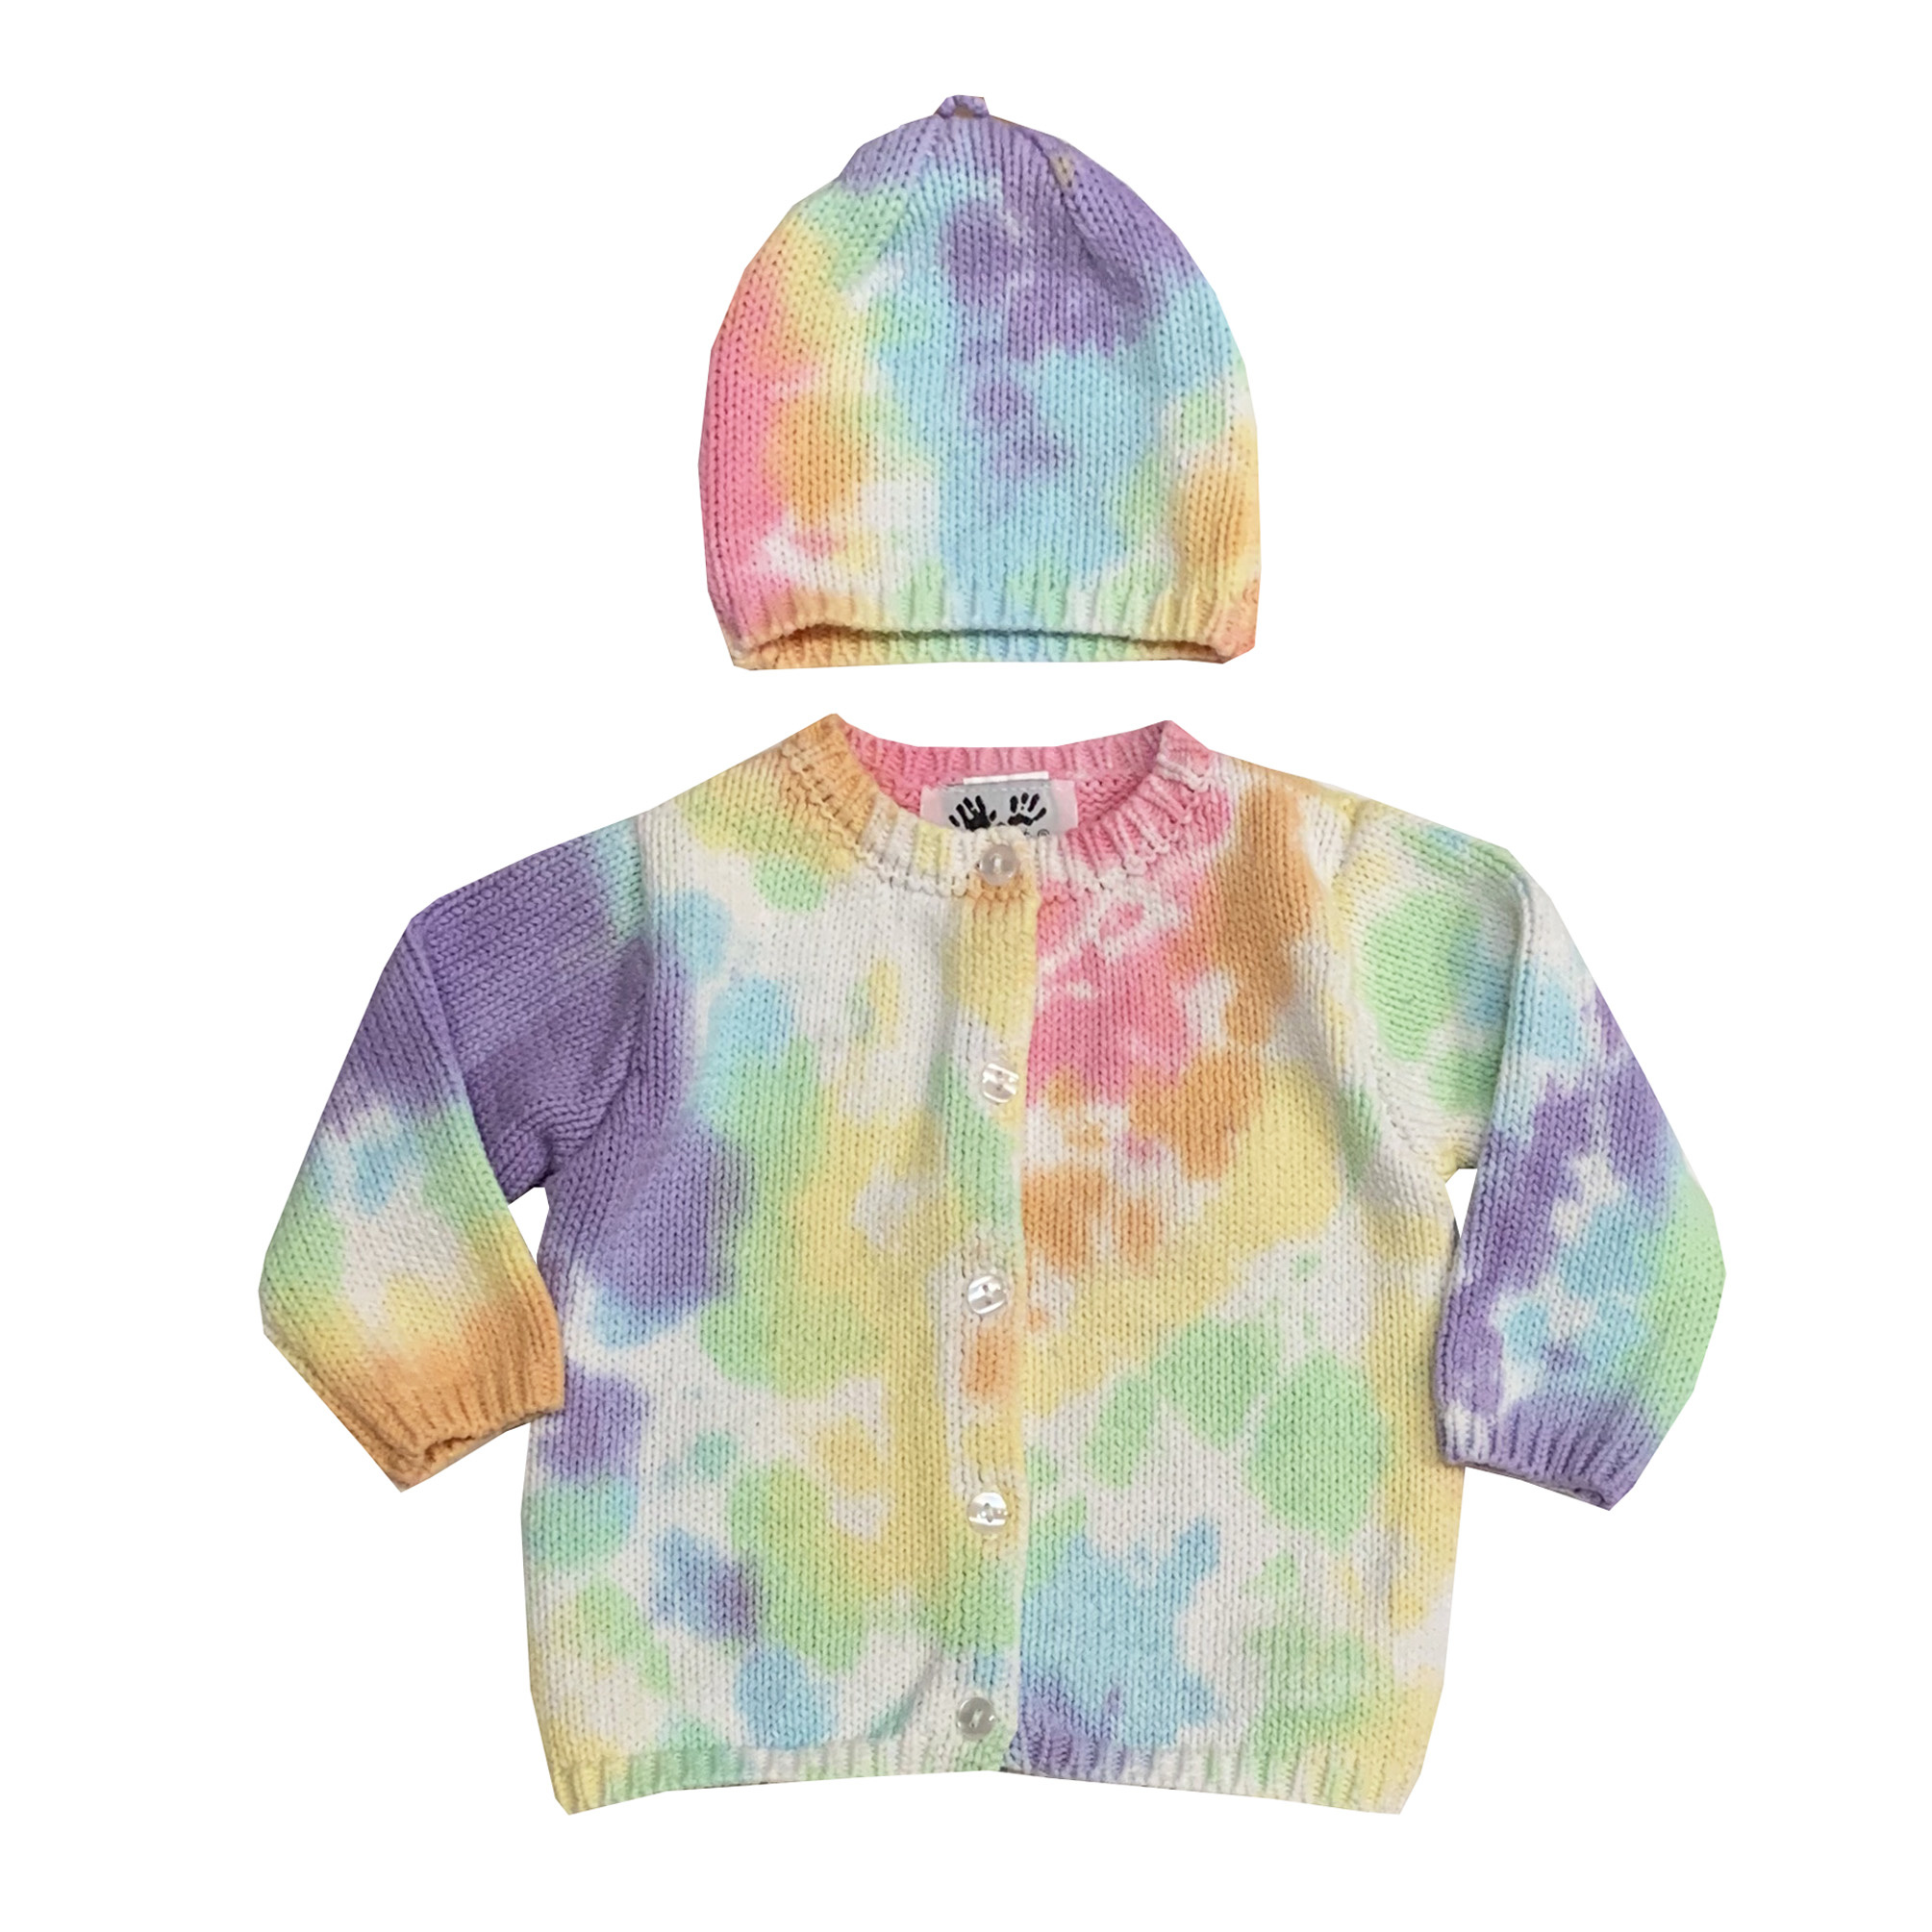 Fingerprints Pastel Tie Dye Knitted Sweater & Hat Set